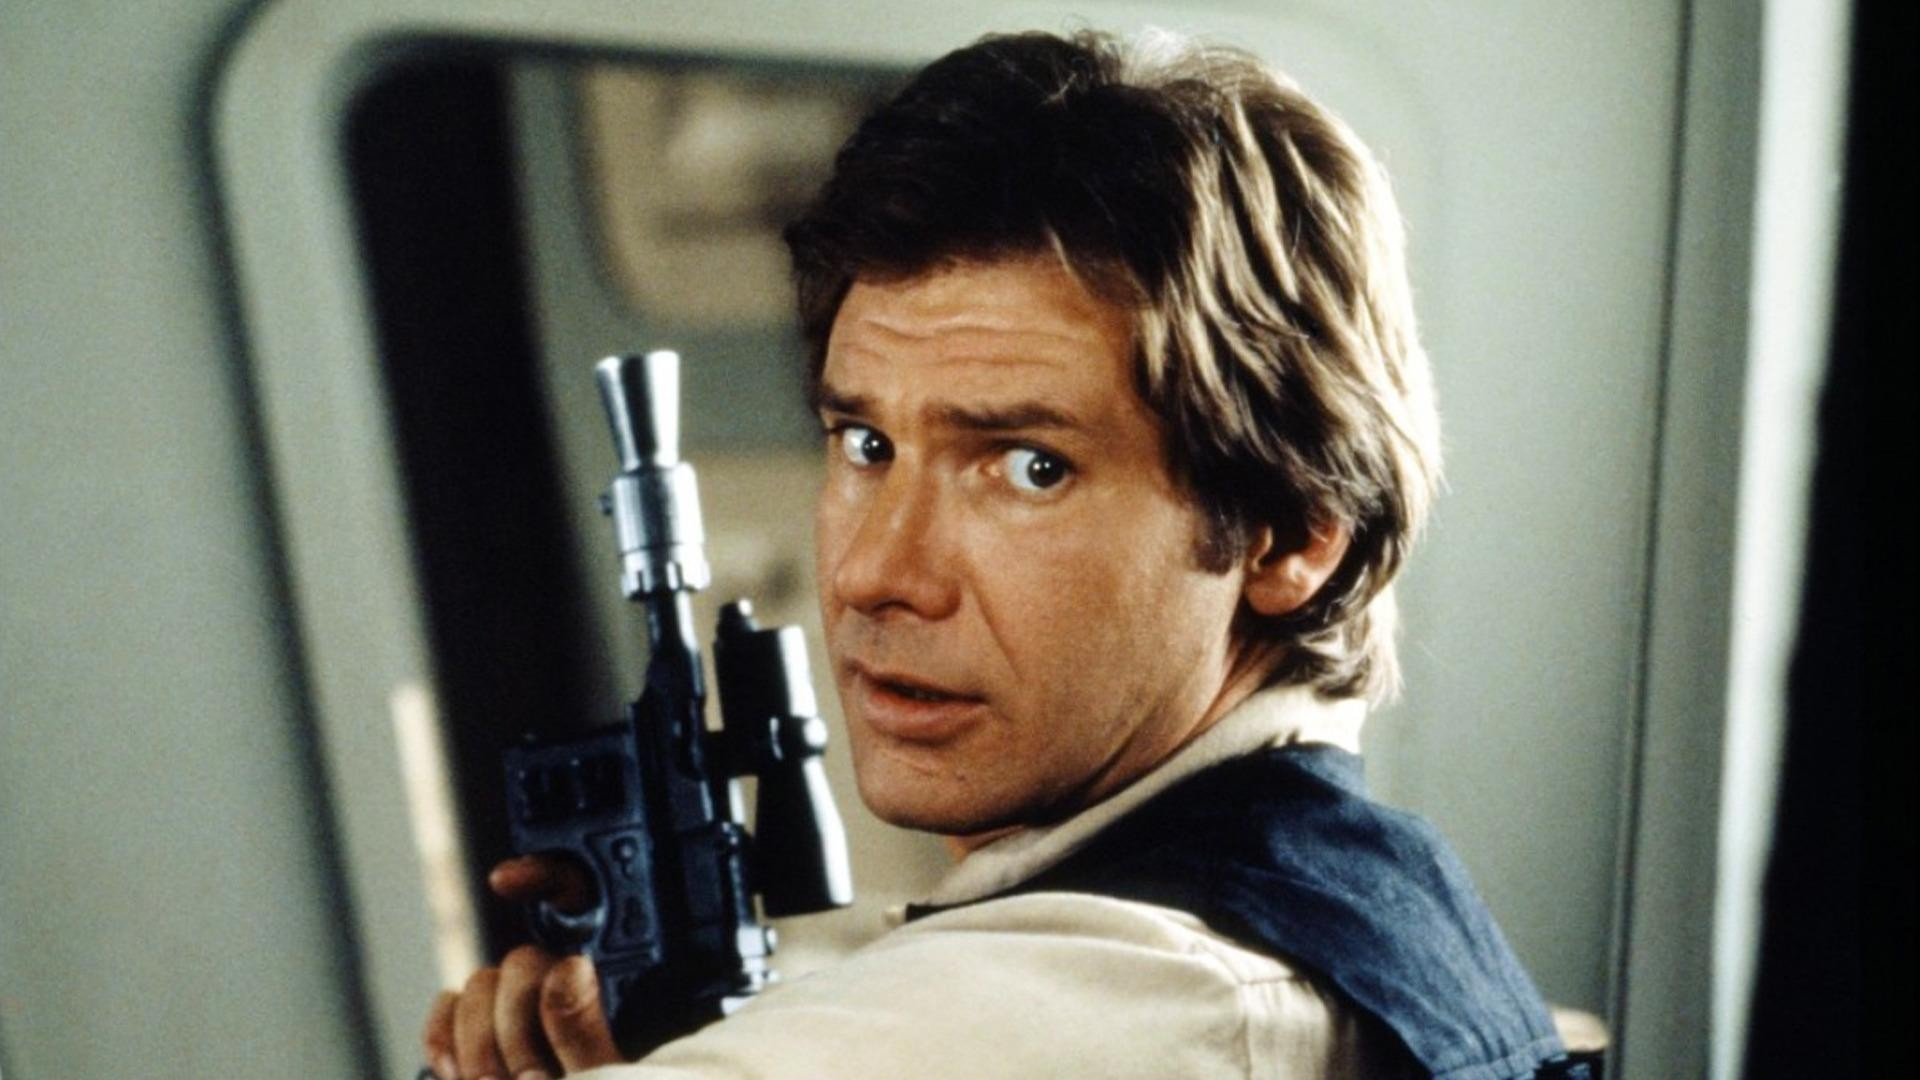 flick,solo,ford,william henry harrison,star,han,lead,movies,state of war,asterisk,wars,whizz,adept,star wars,whiz,harrison,in,crossing,virtuoso